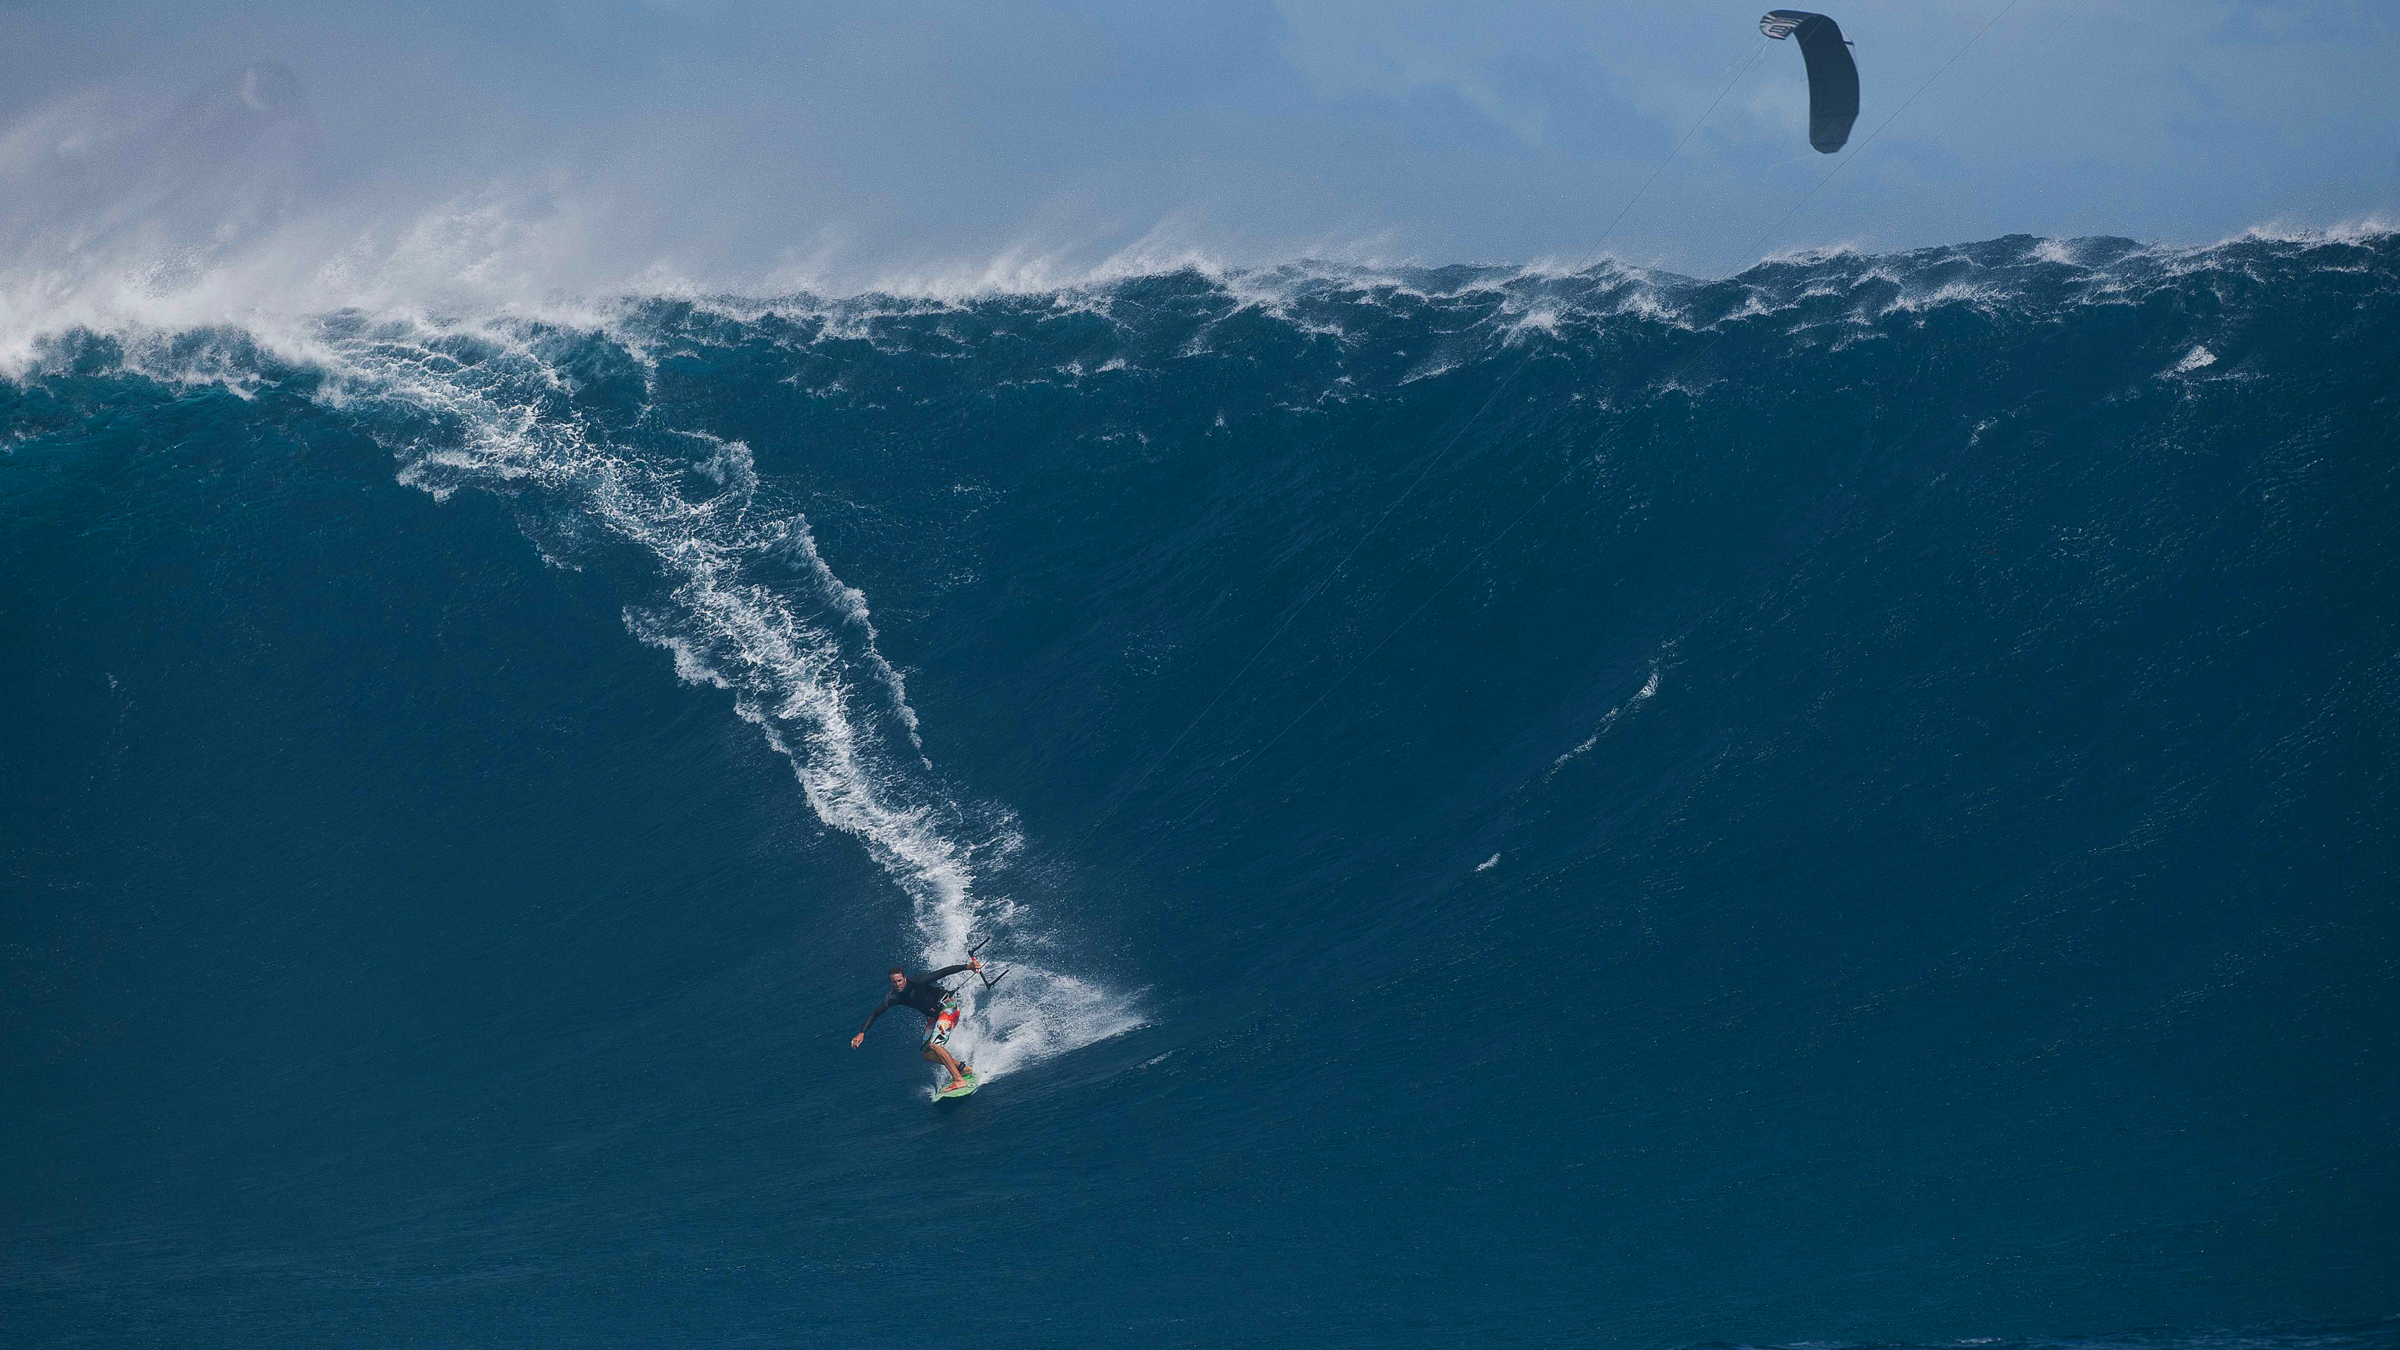 kitesurf wallpaper image - Ben Wilson on what must be the biggest wave ever kitesurfed - in resolution: High Definition - HD 16:9 2400 X 1350